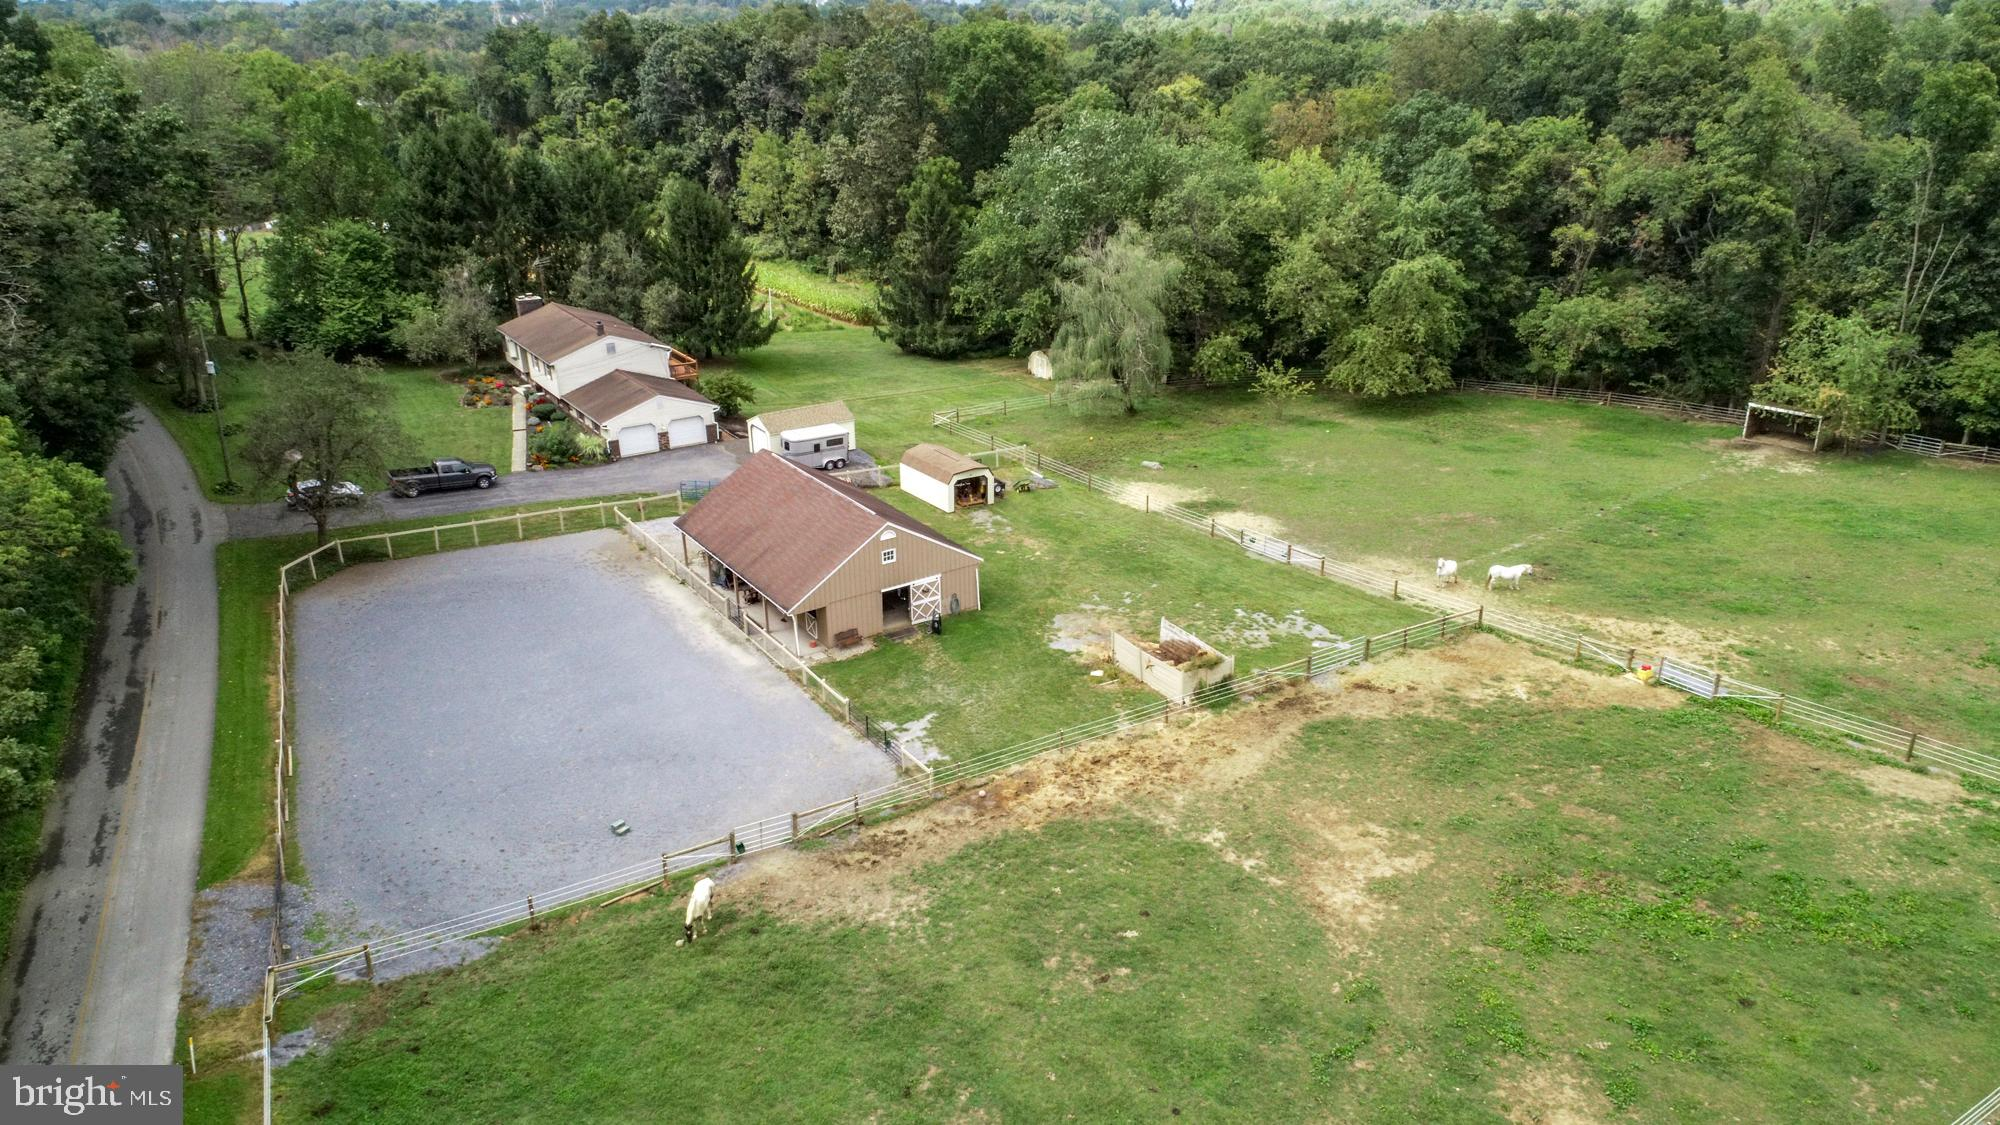 219 YODER ROAD, BAINBRIDGE, PA 17502